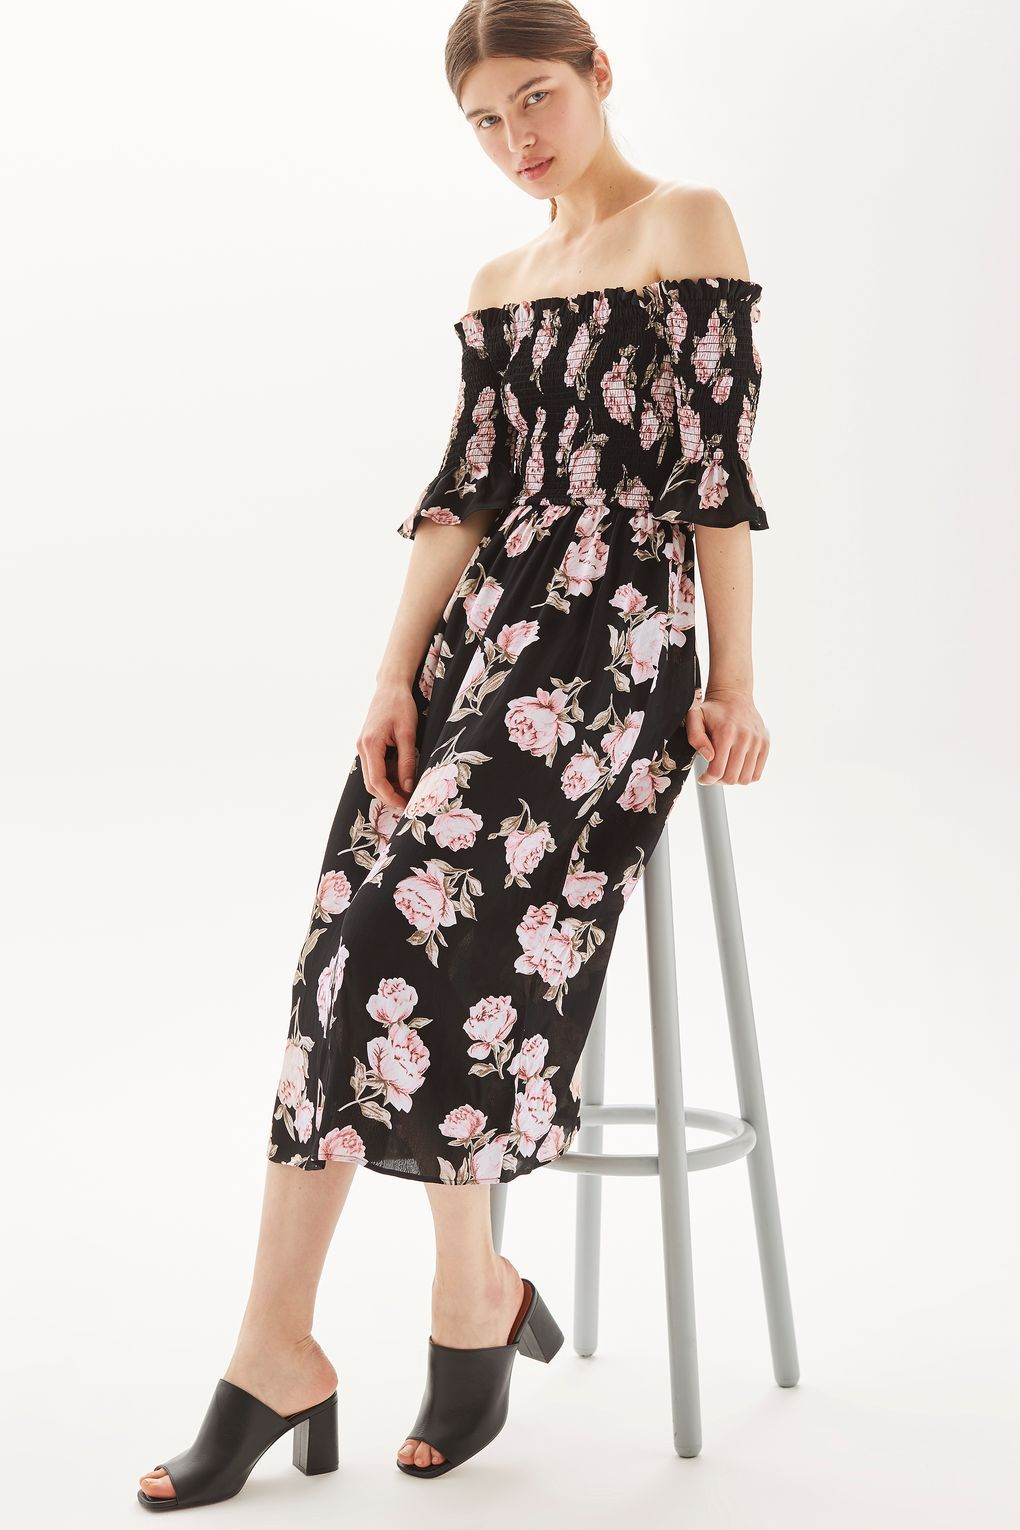 f1c96813dc19b Go girl in this adorable floral print bardot midi dress. We love the  off-the-shoulder fit